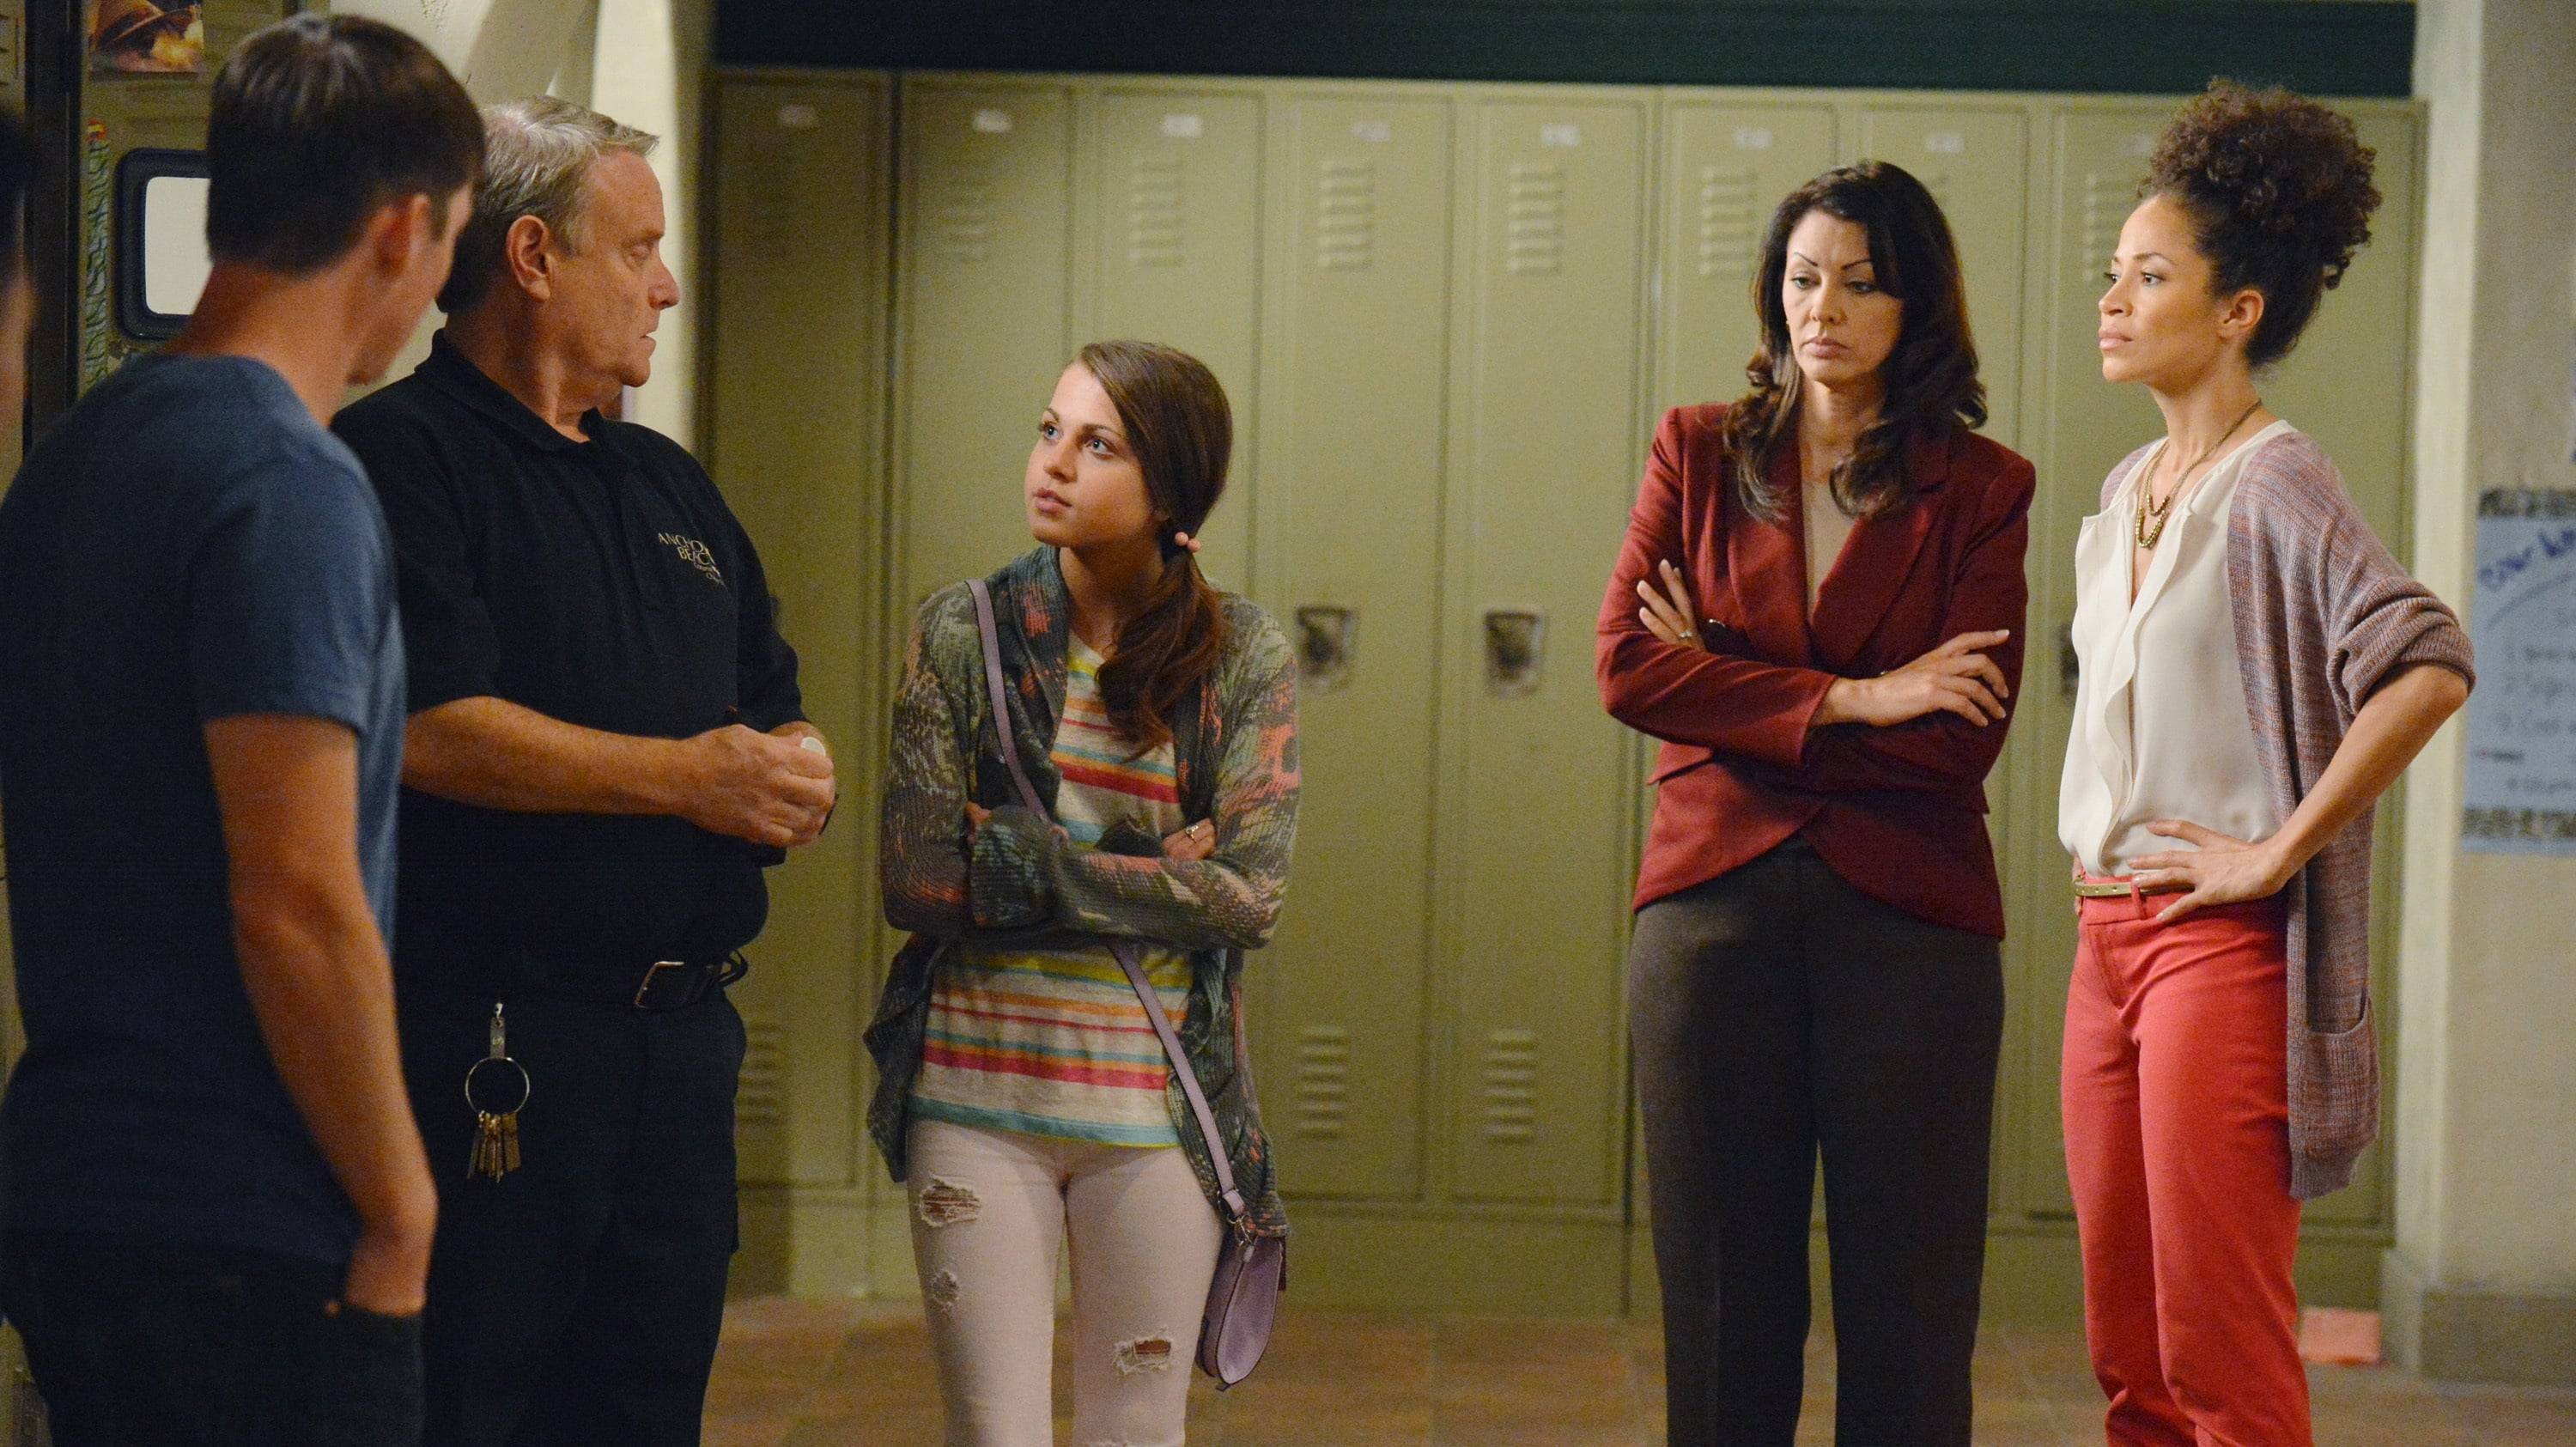 The Fosters on ABC Family - TV Series Finale